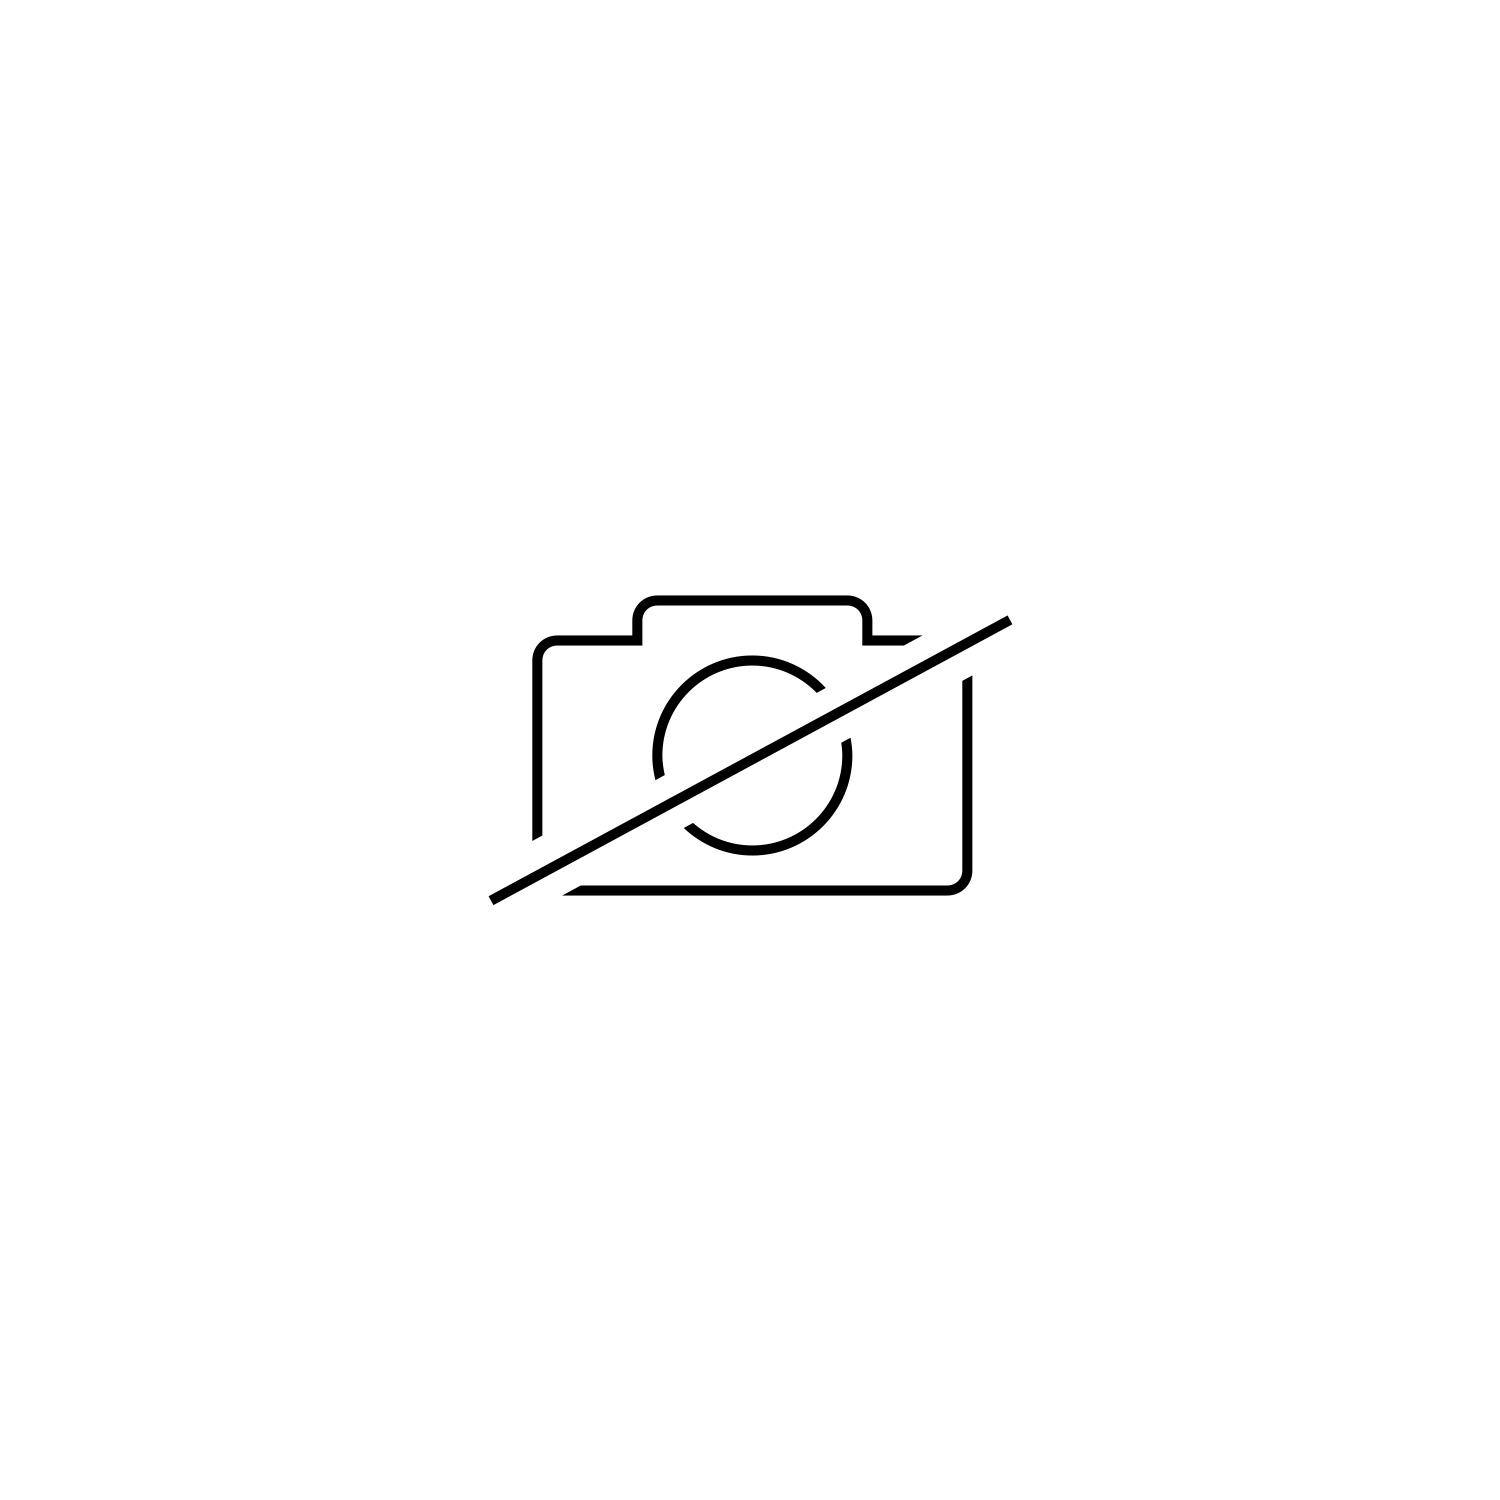 quattro Hoodie, Womens, Light grey, XXL